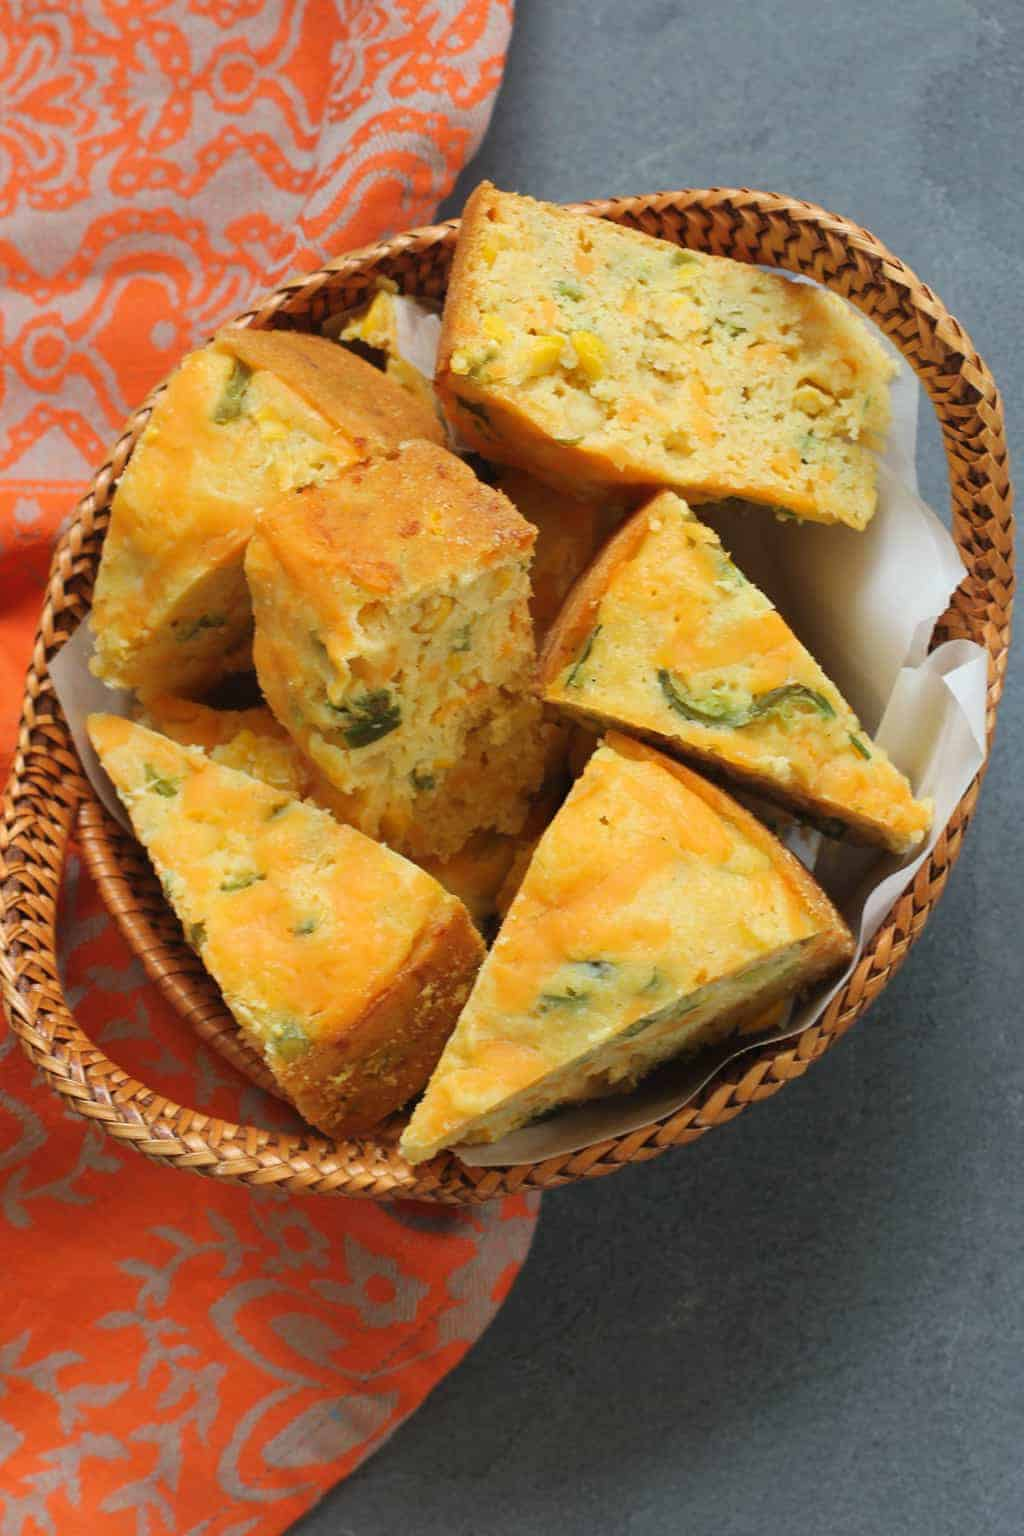 Jalapeño Cheddar Cornbread - A perfect combination of sweet and savory, this buttery, cheesy cornbread is packed with the flavors and earthy aromas of fresh corn and peppers.